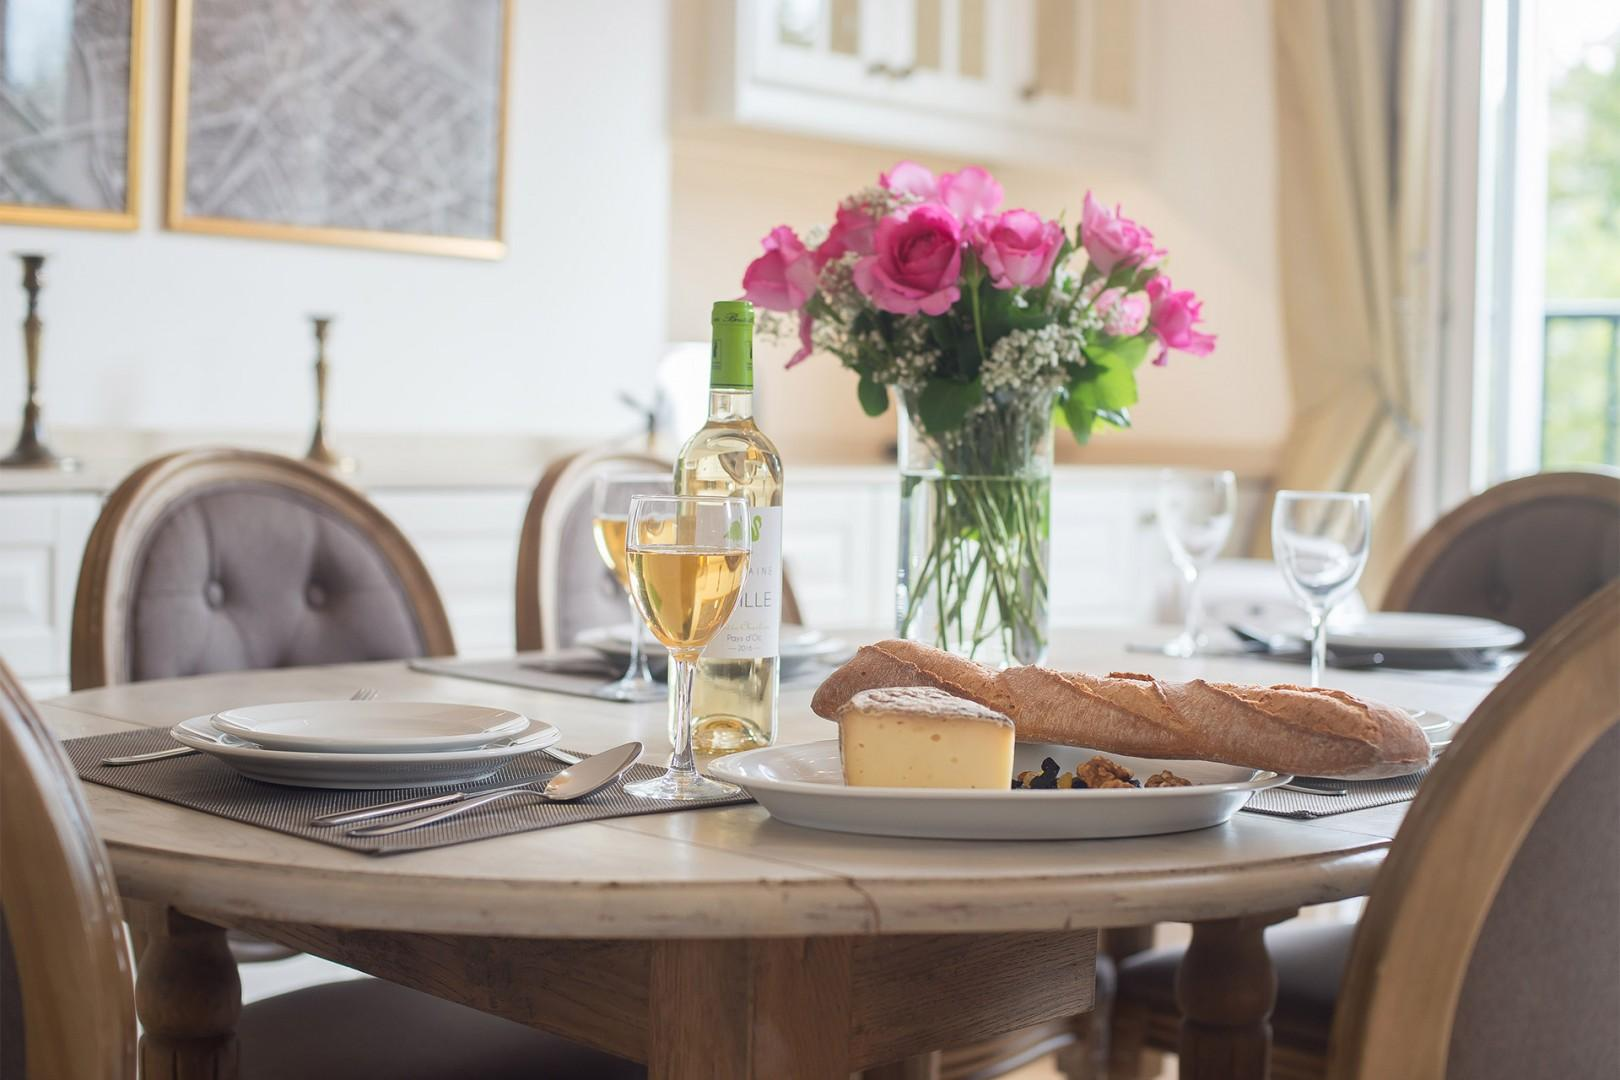 Save time and money dining at home.